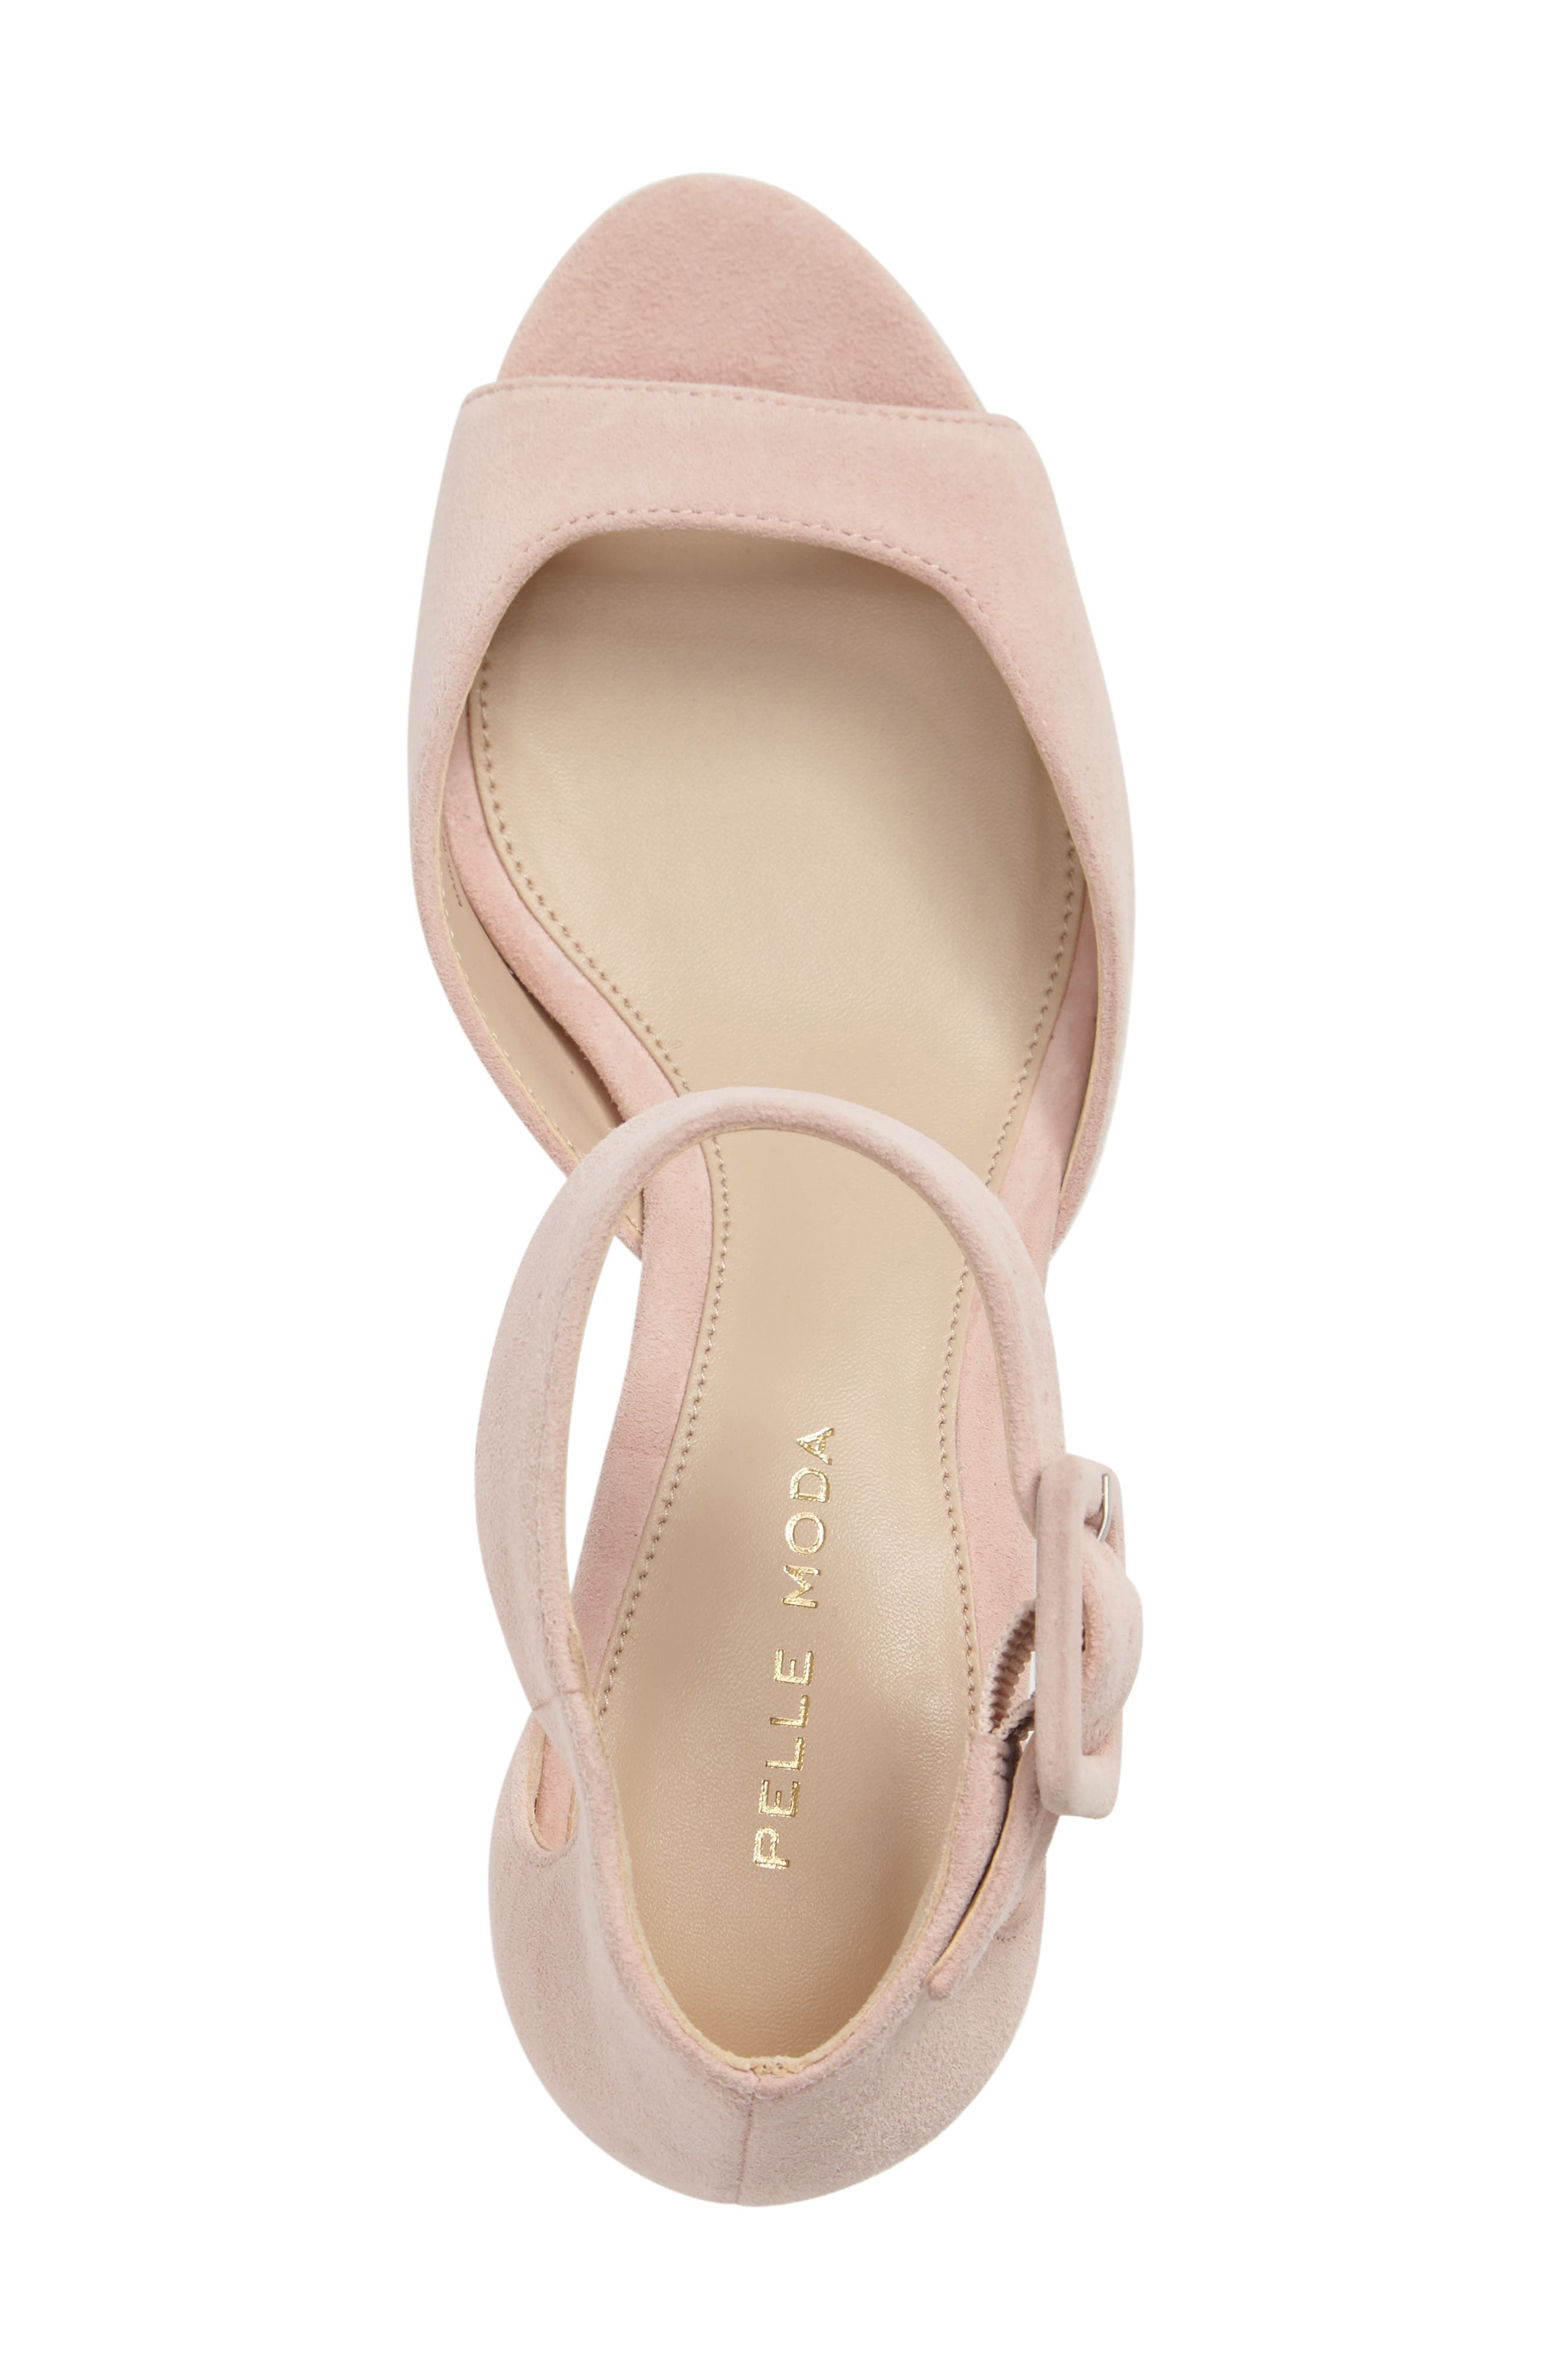 'Berlin' Ankle Strap Sandal,                             Alternate thumbnail 3, color,                             Pale Pink Leather